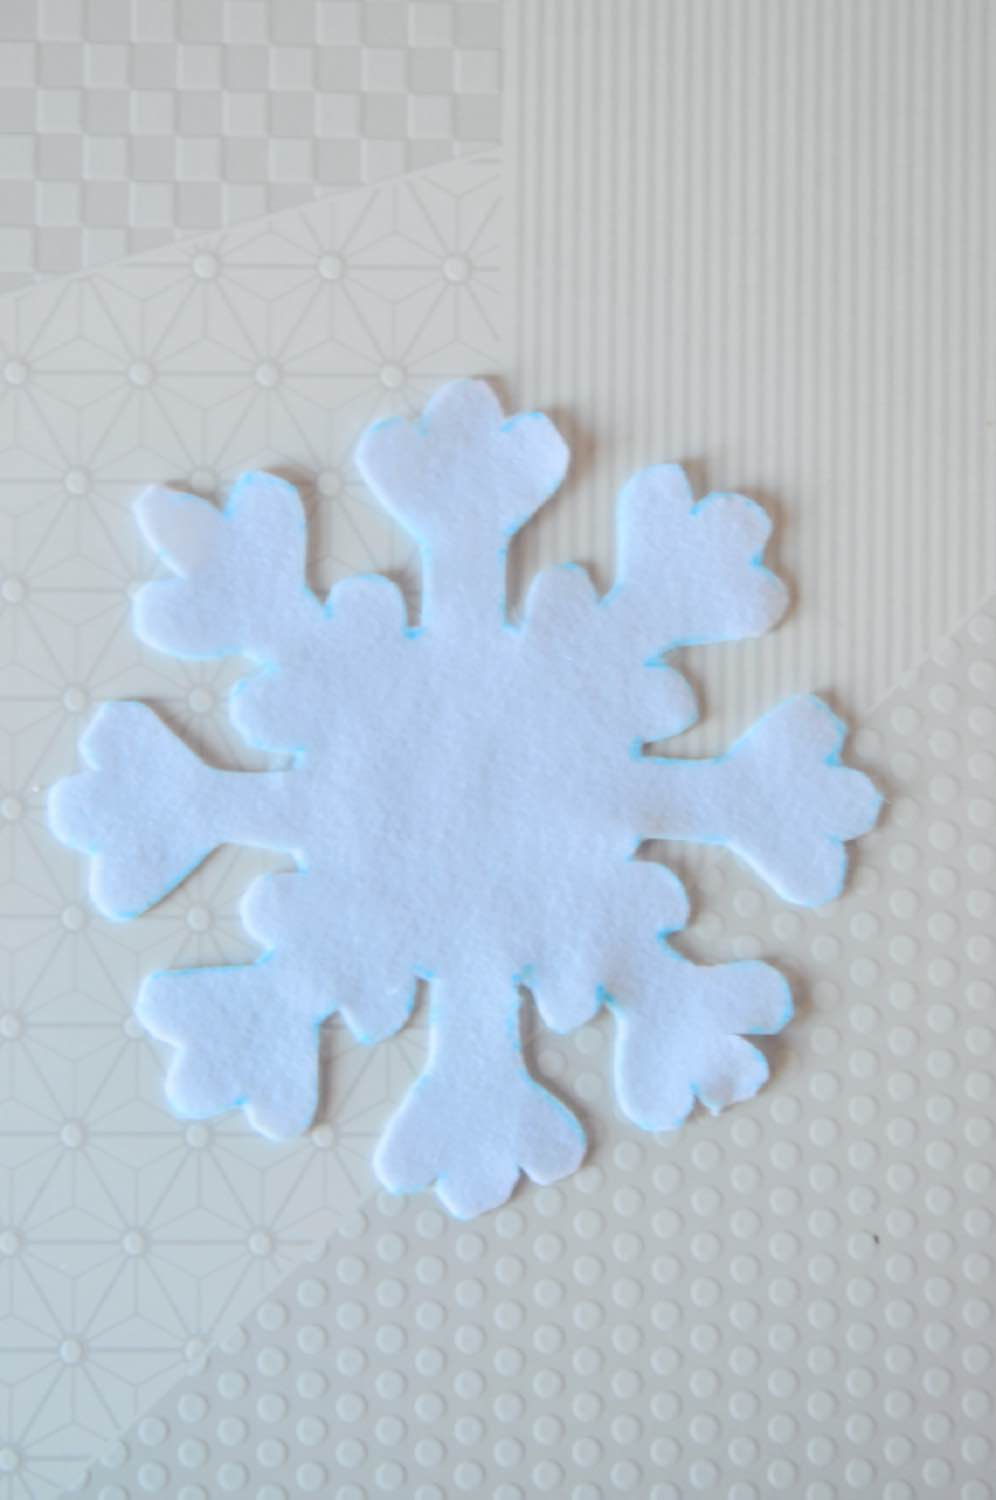 finished snowflake placemat diy pop shop america